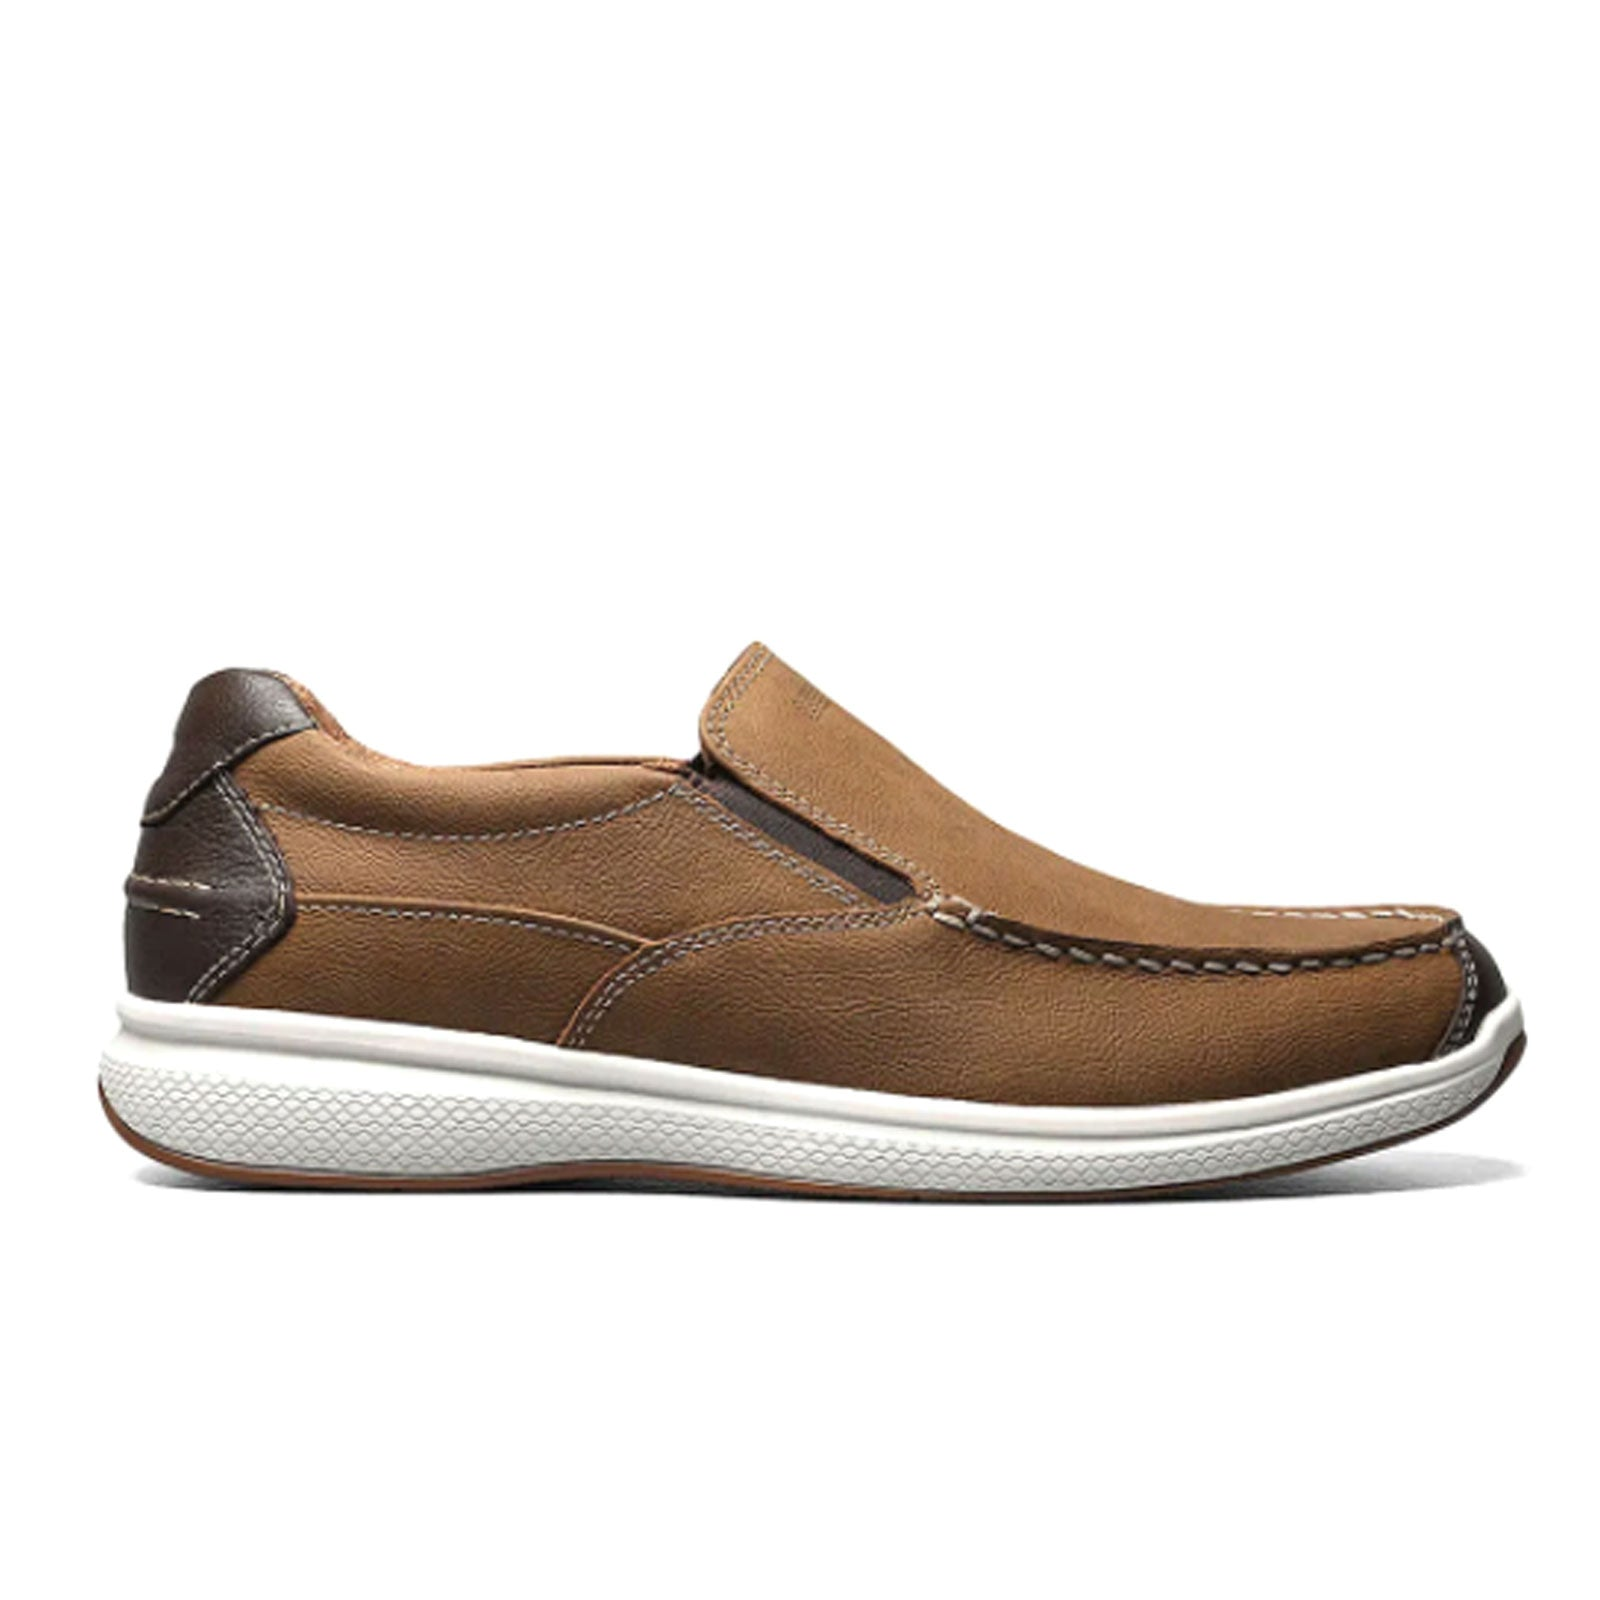 Florsheim Great Lakes Slip On (Men) - Stone Crazy Horse Dress/Casual|Slip Ons - The Heel Shoe Fitters